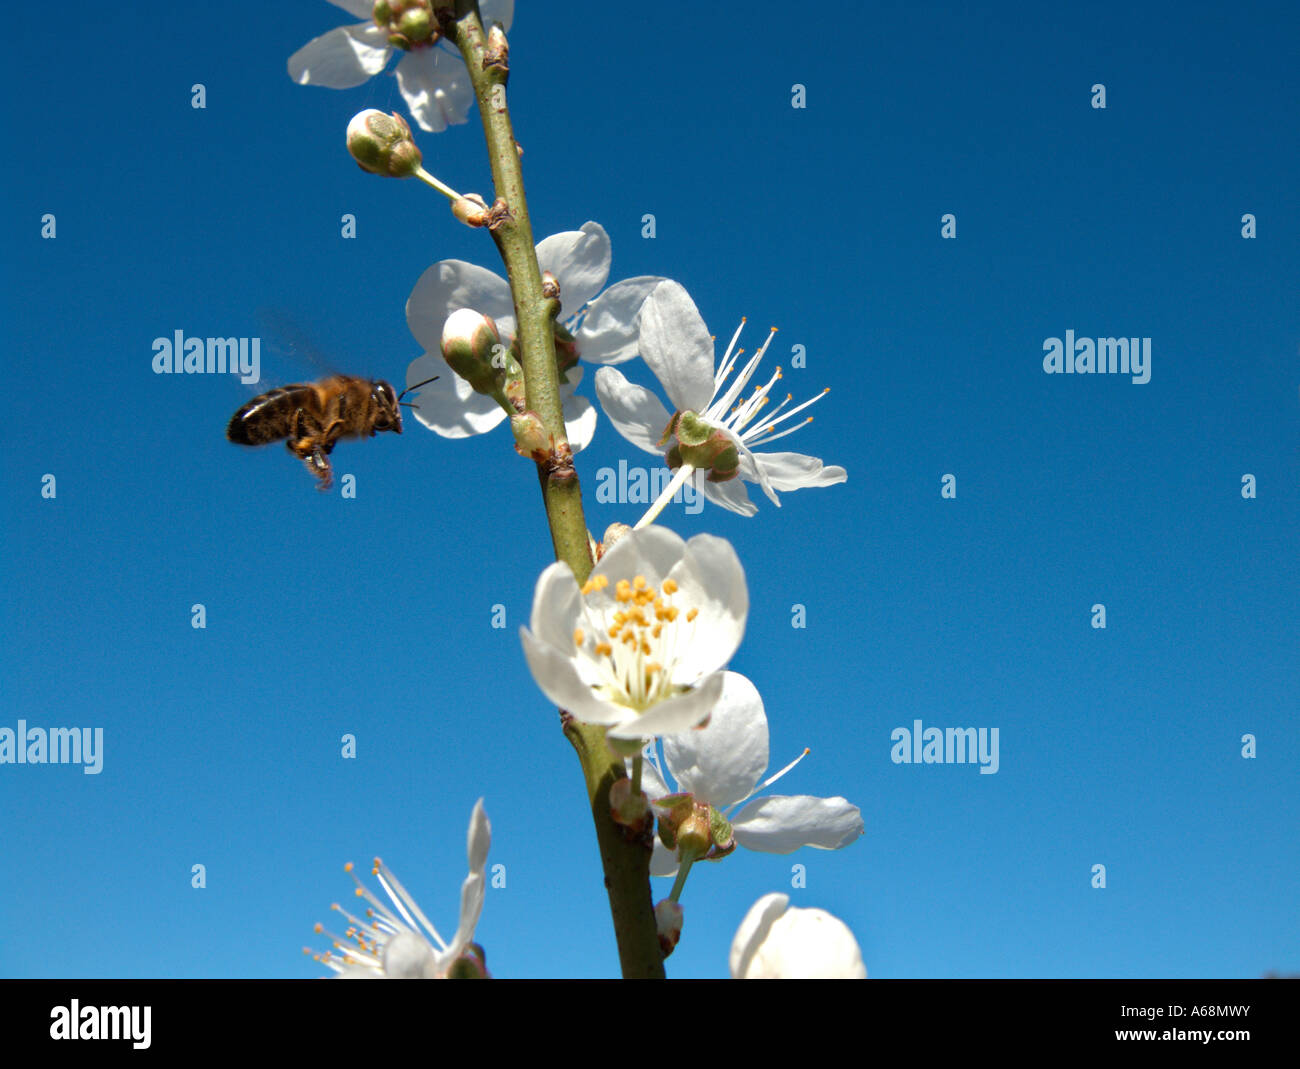 A bee collecting pollen in the first plum blossoms of the season. Valencia. Spain. - Stock Image